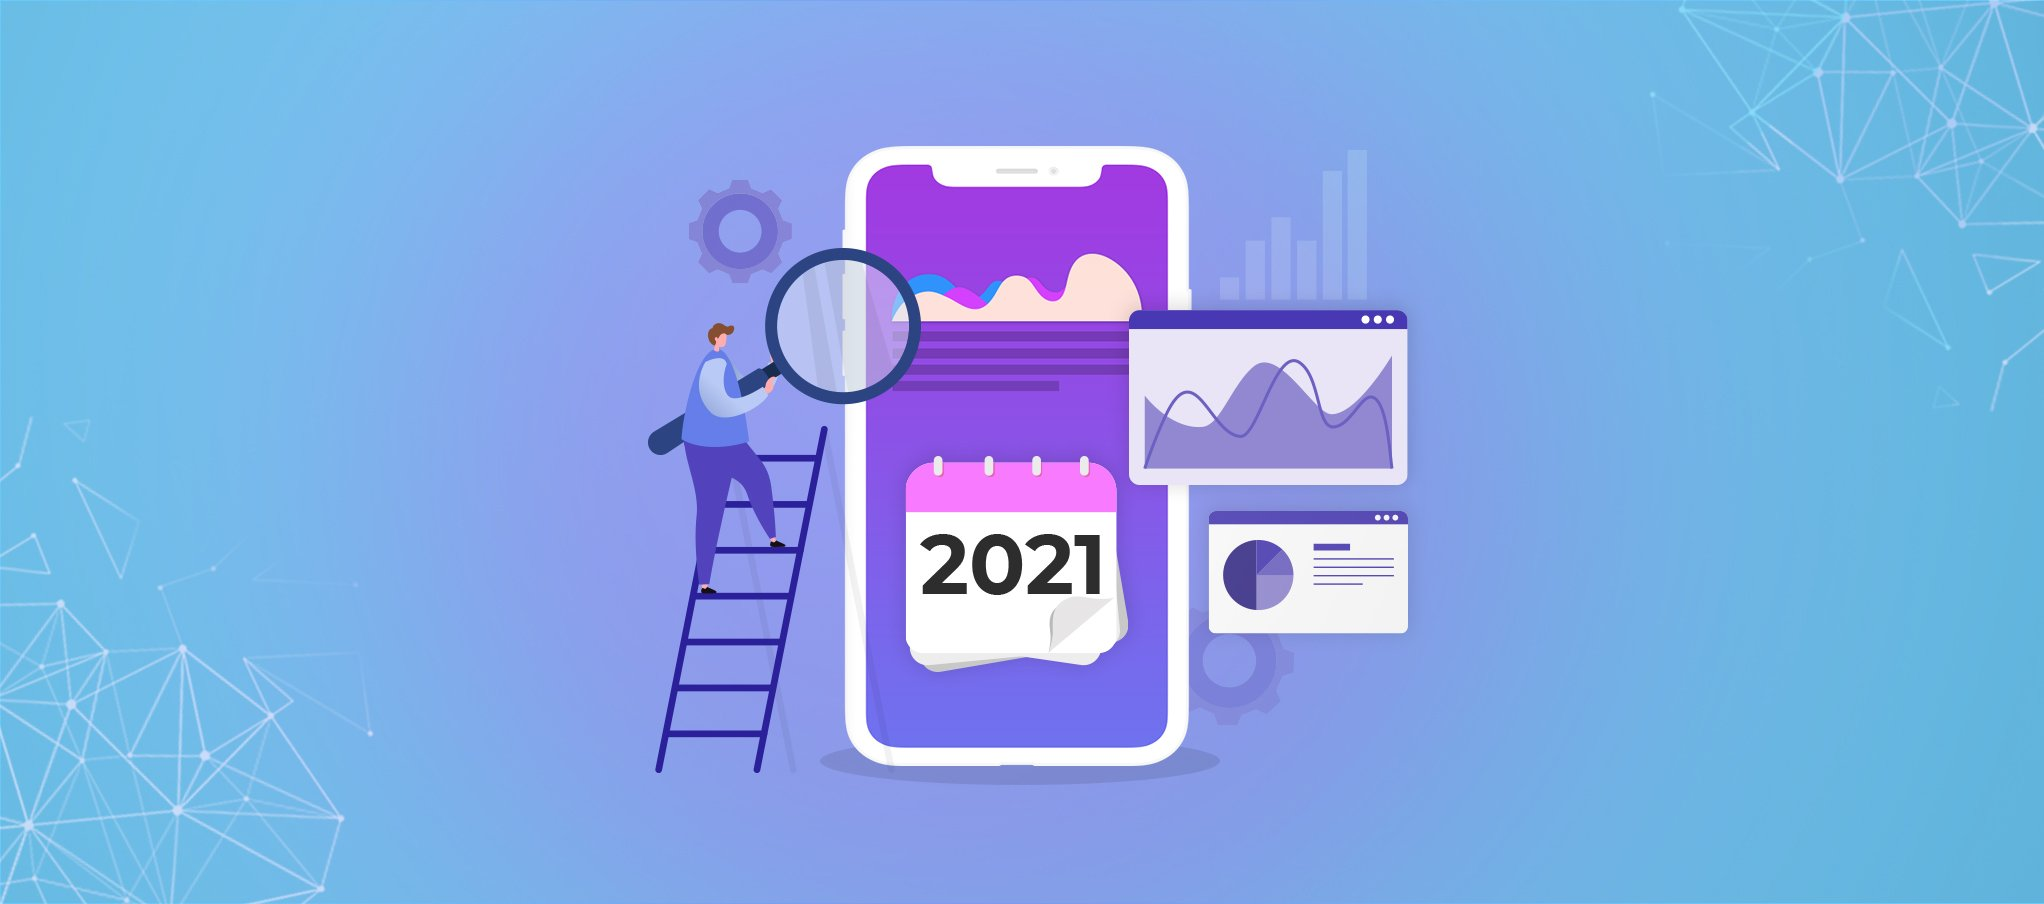 What should mobile marketers expect in 2021